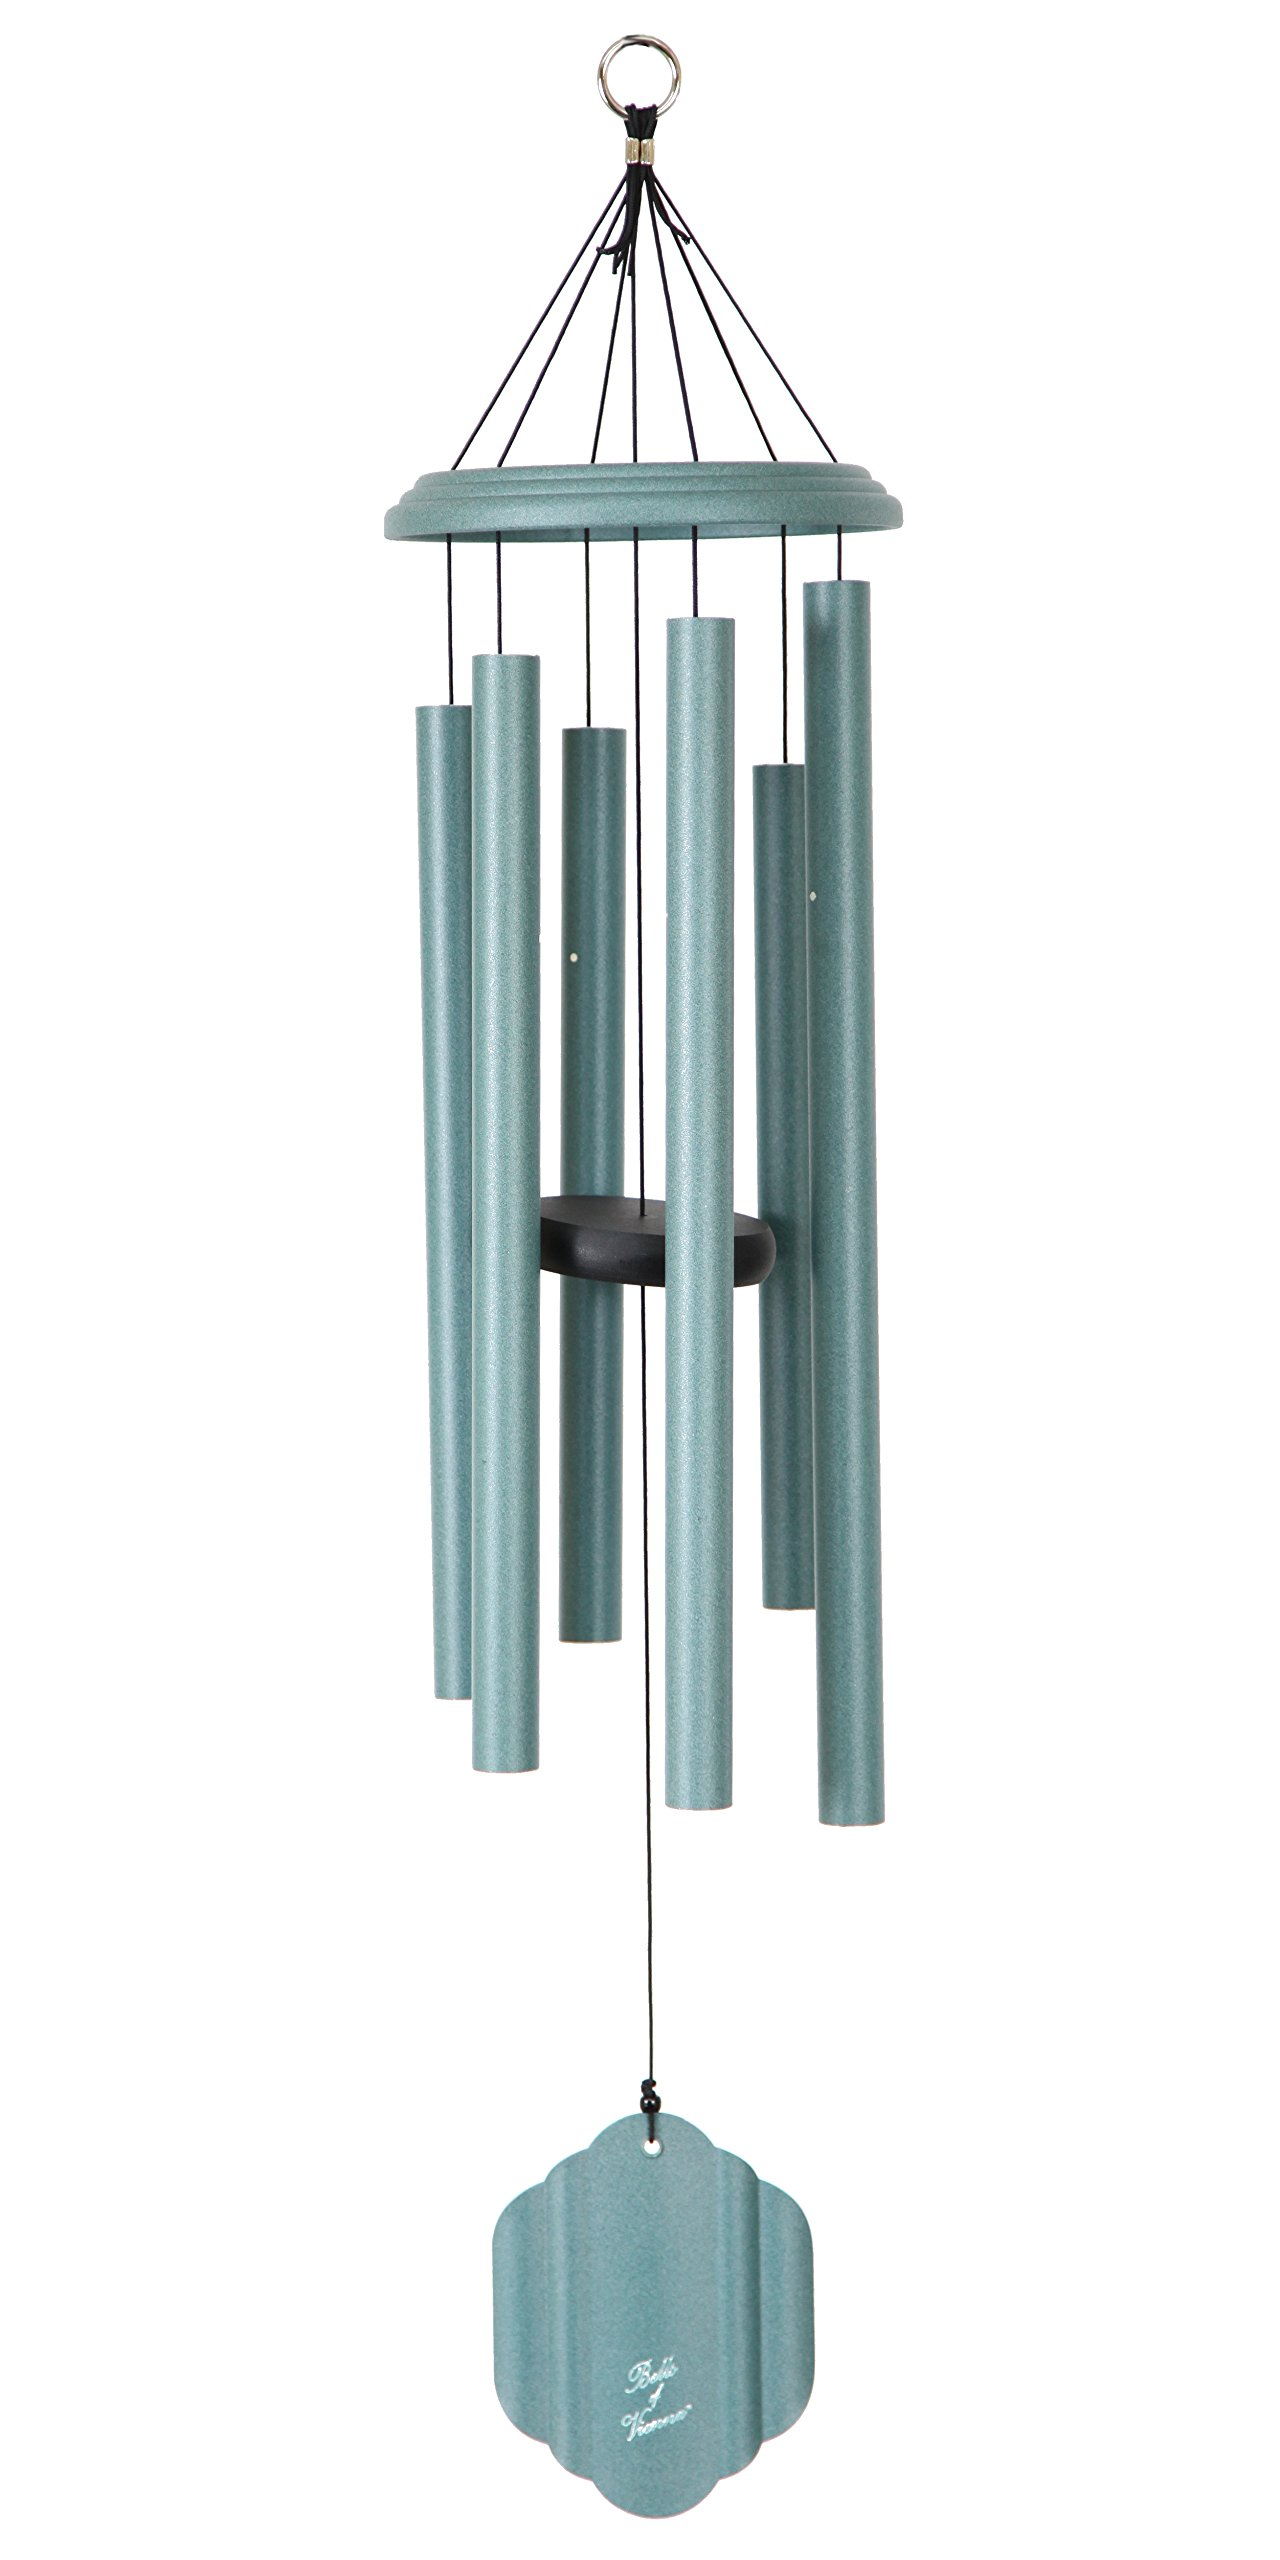 Bells of Vienna 36-inch Windchime, Patina Green